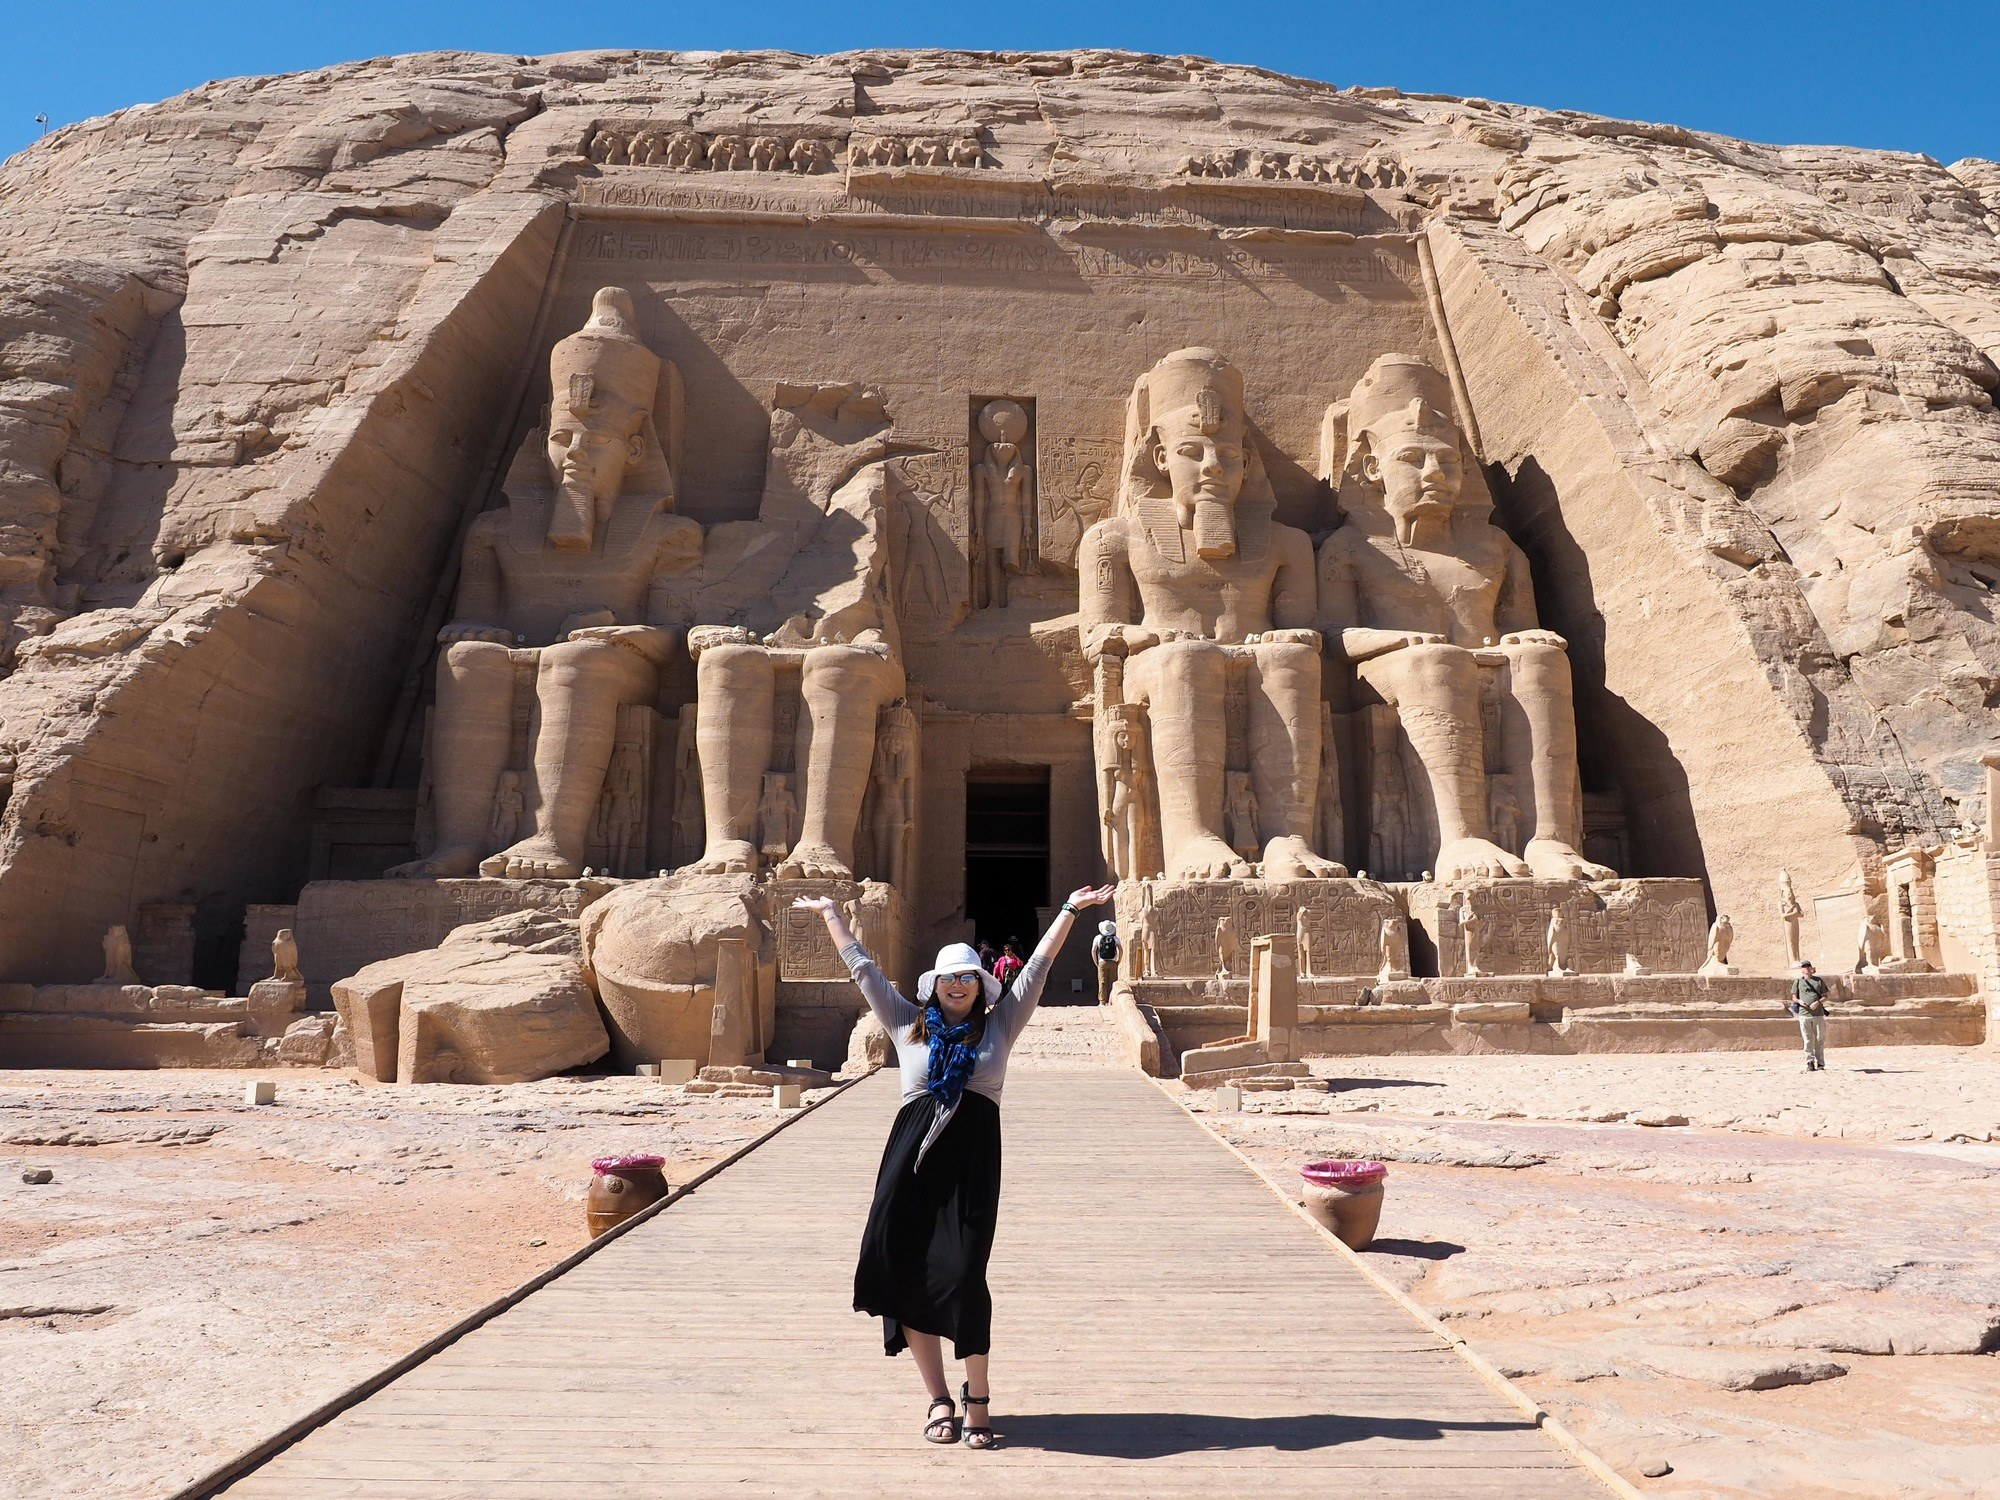 Abu Simbel temples in Egypt